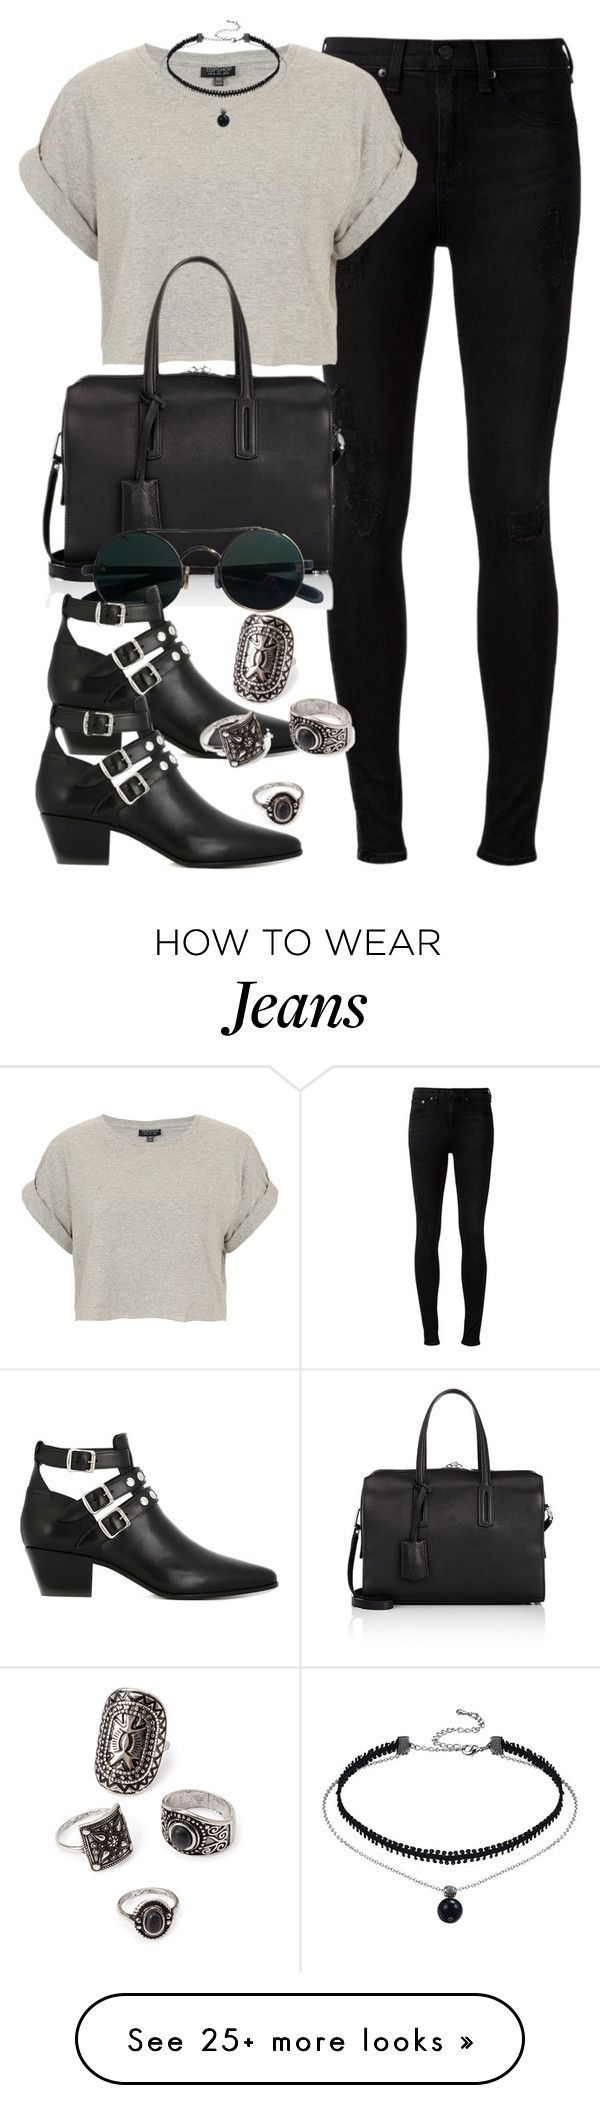 """Style #10783"" by vany-alvarado on Polyvore featuring rag & bone, Topshop, Byredo, Yves Saint Laurent and Forever 21"